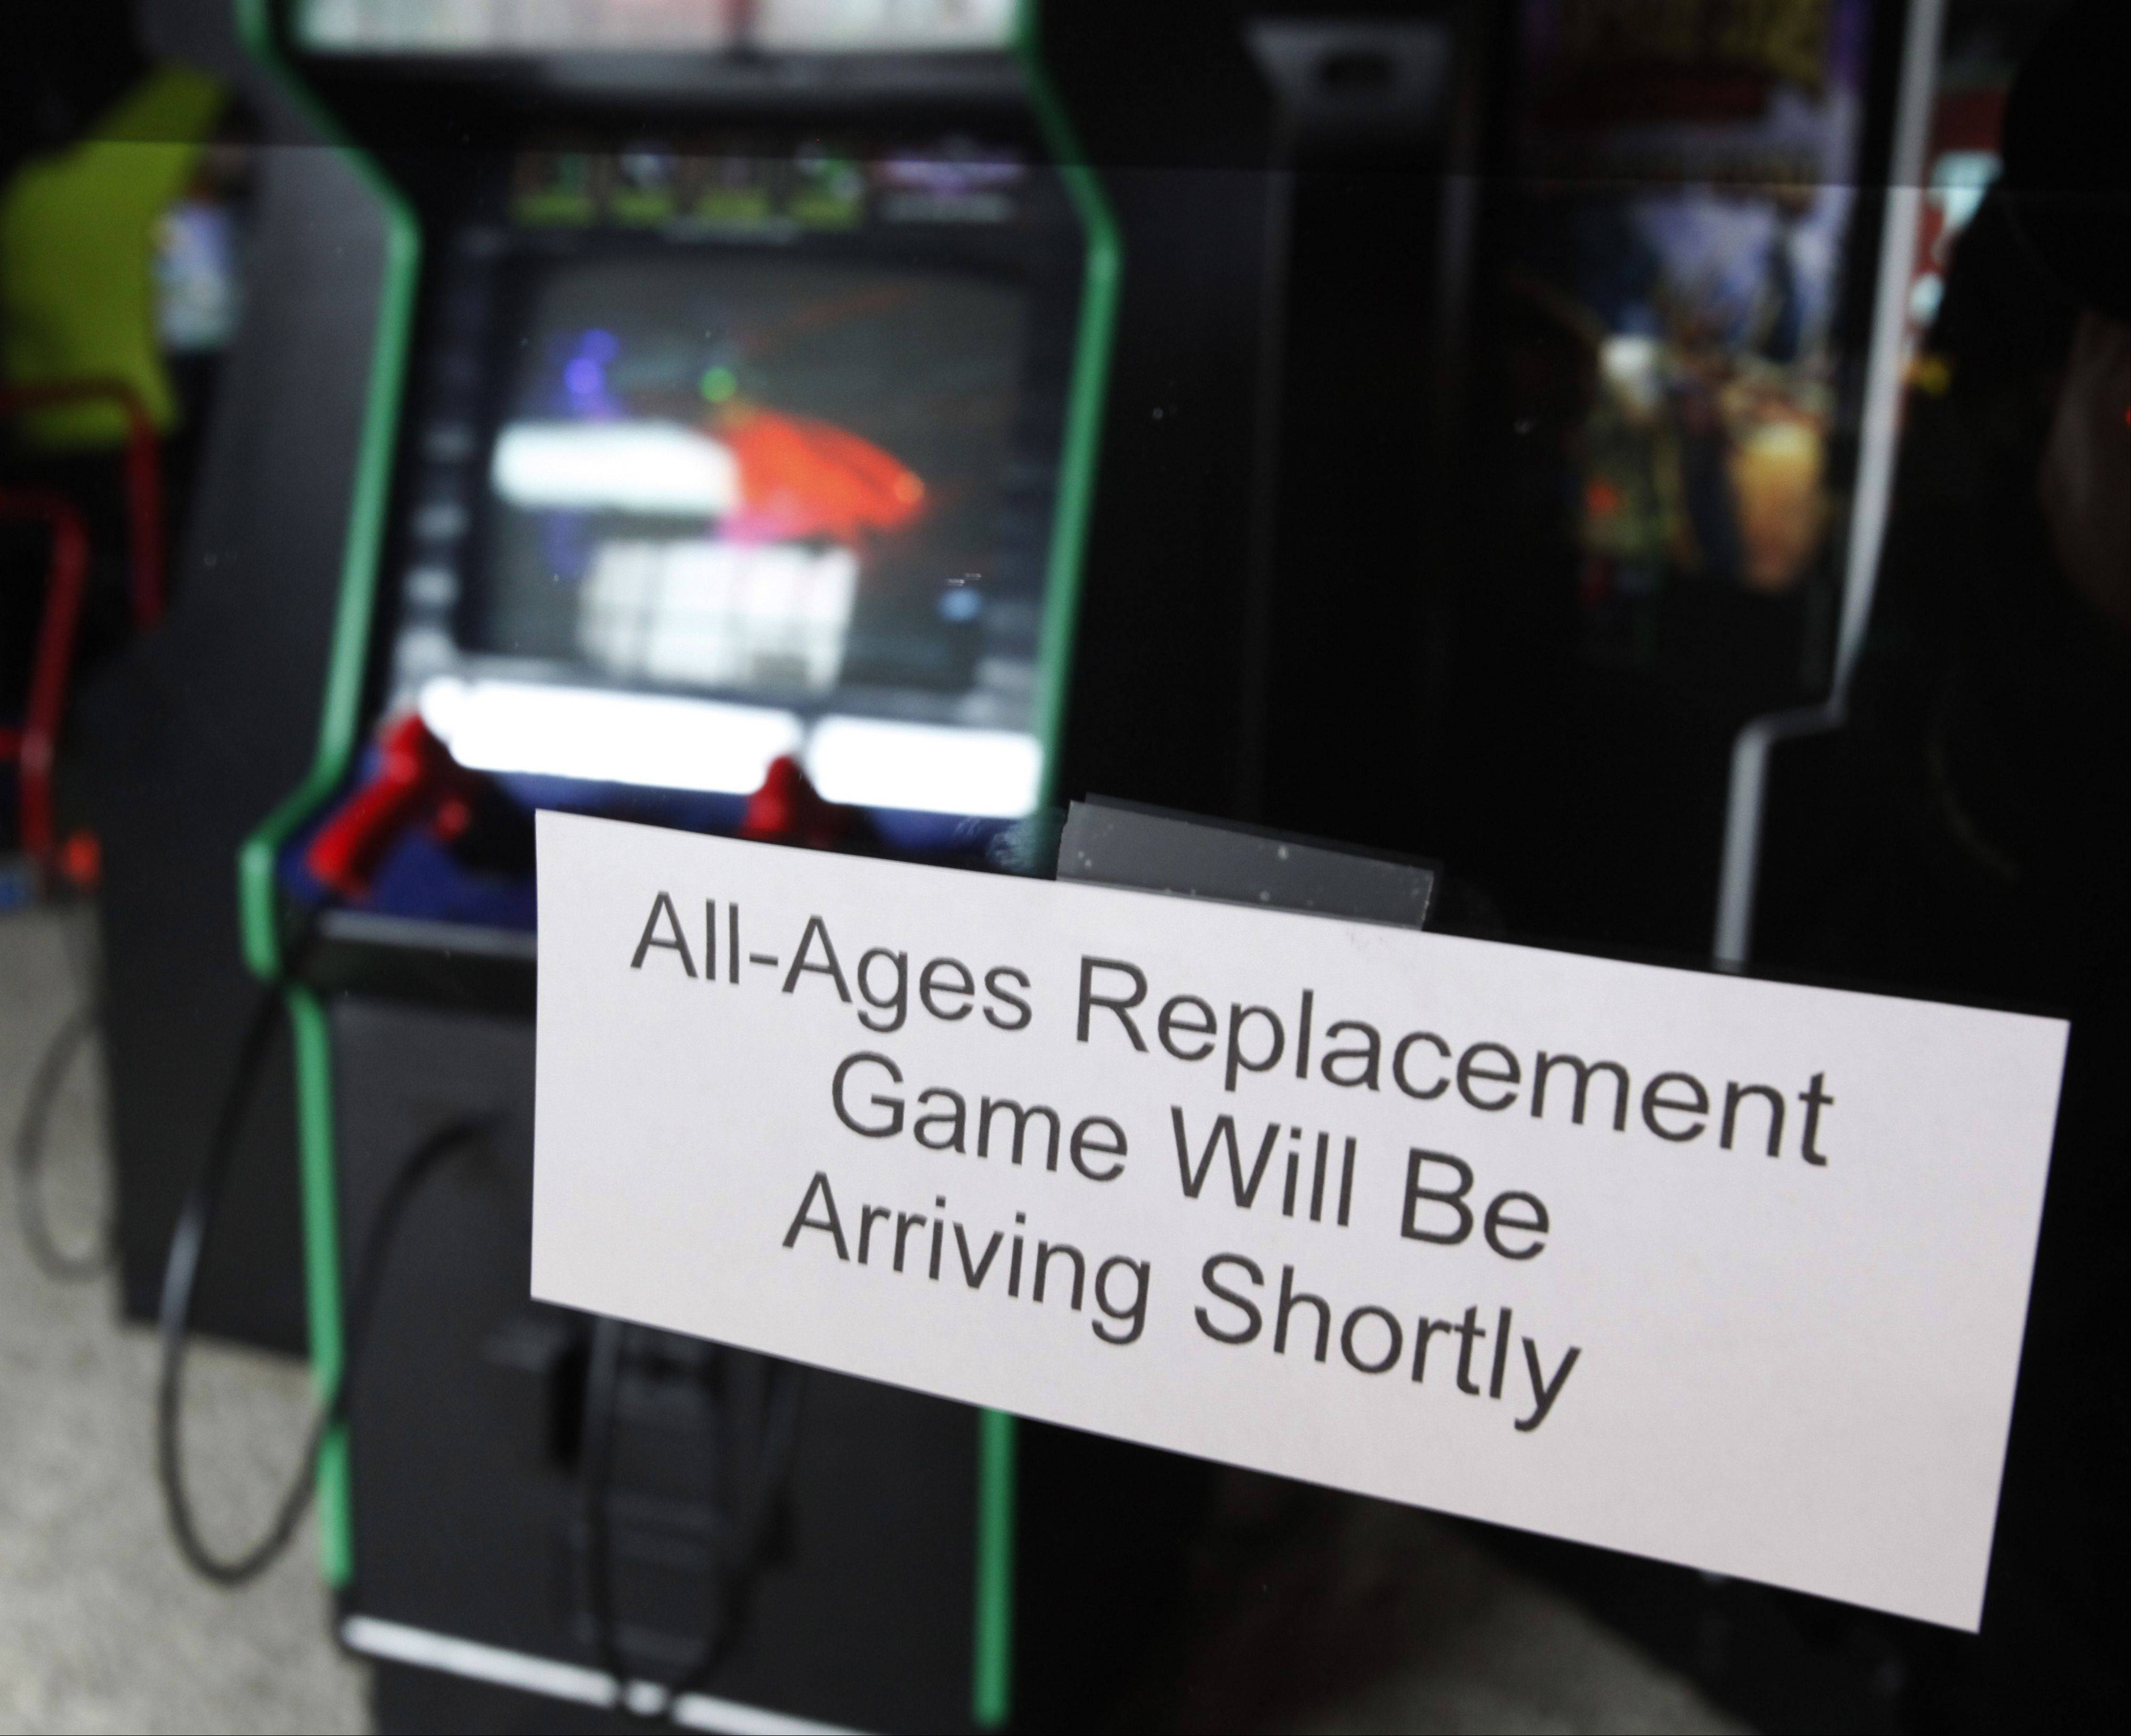 Kevin Slota, co-owner of No Limit Arcade in Algonquin, plans to remove 12 violent video games from his business.